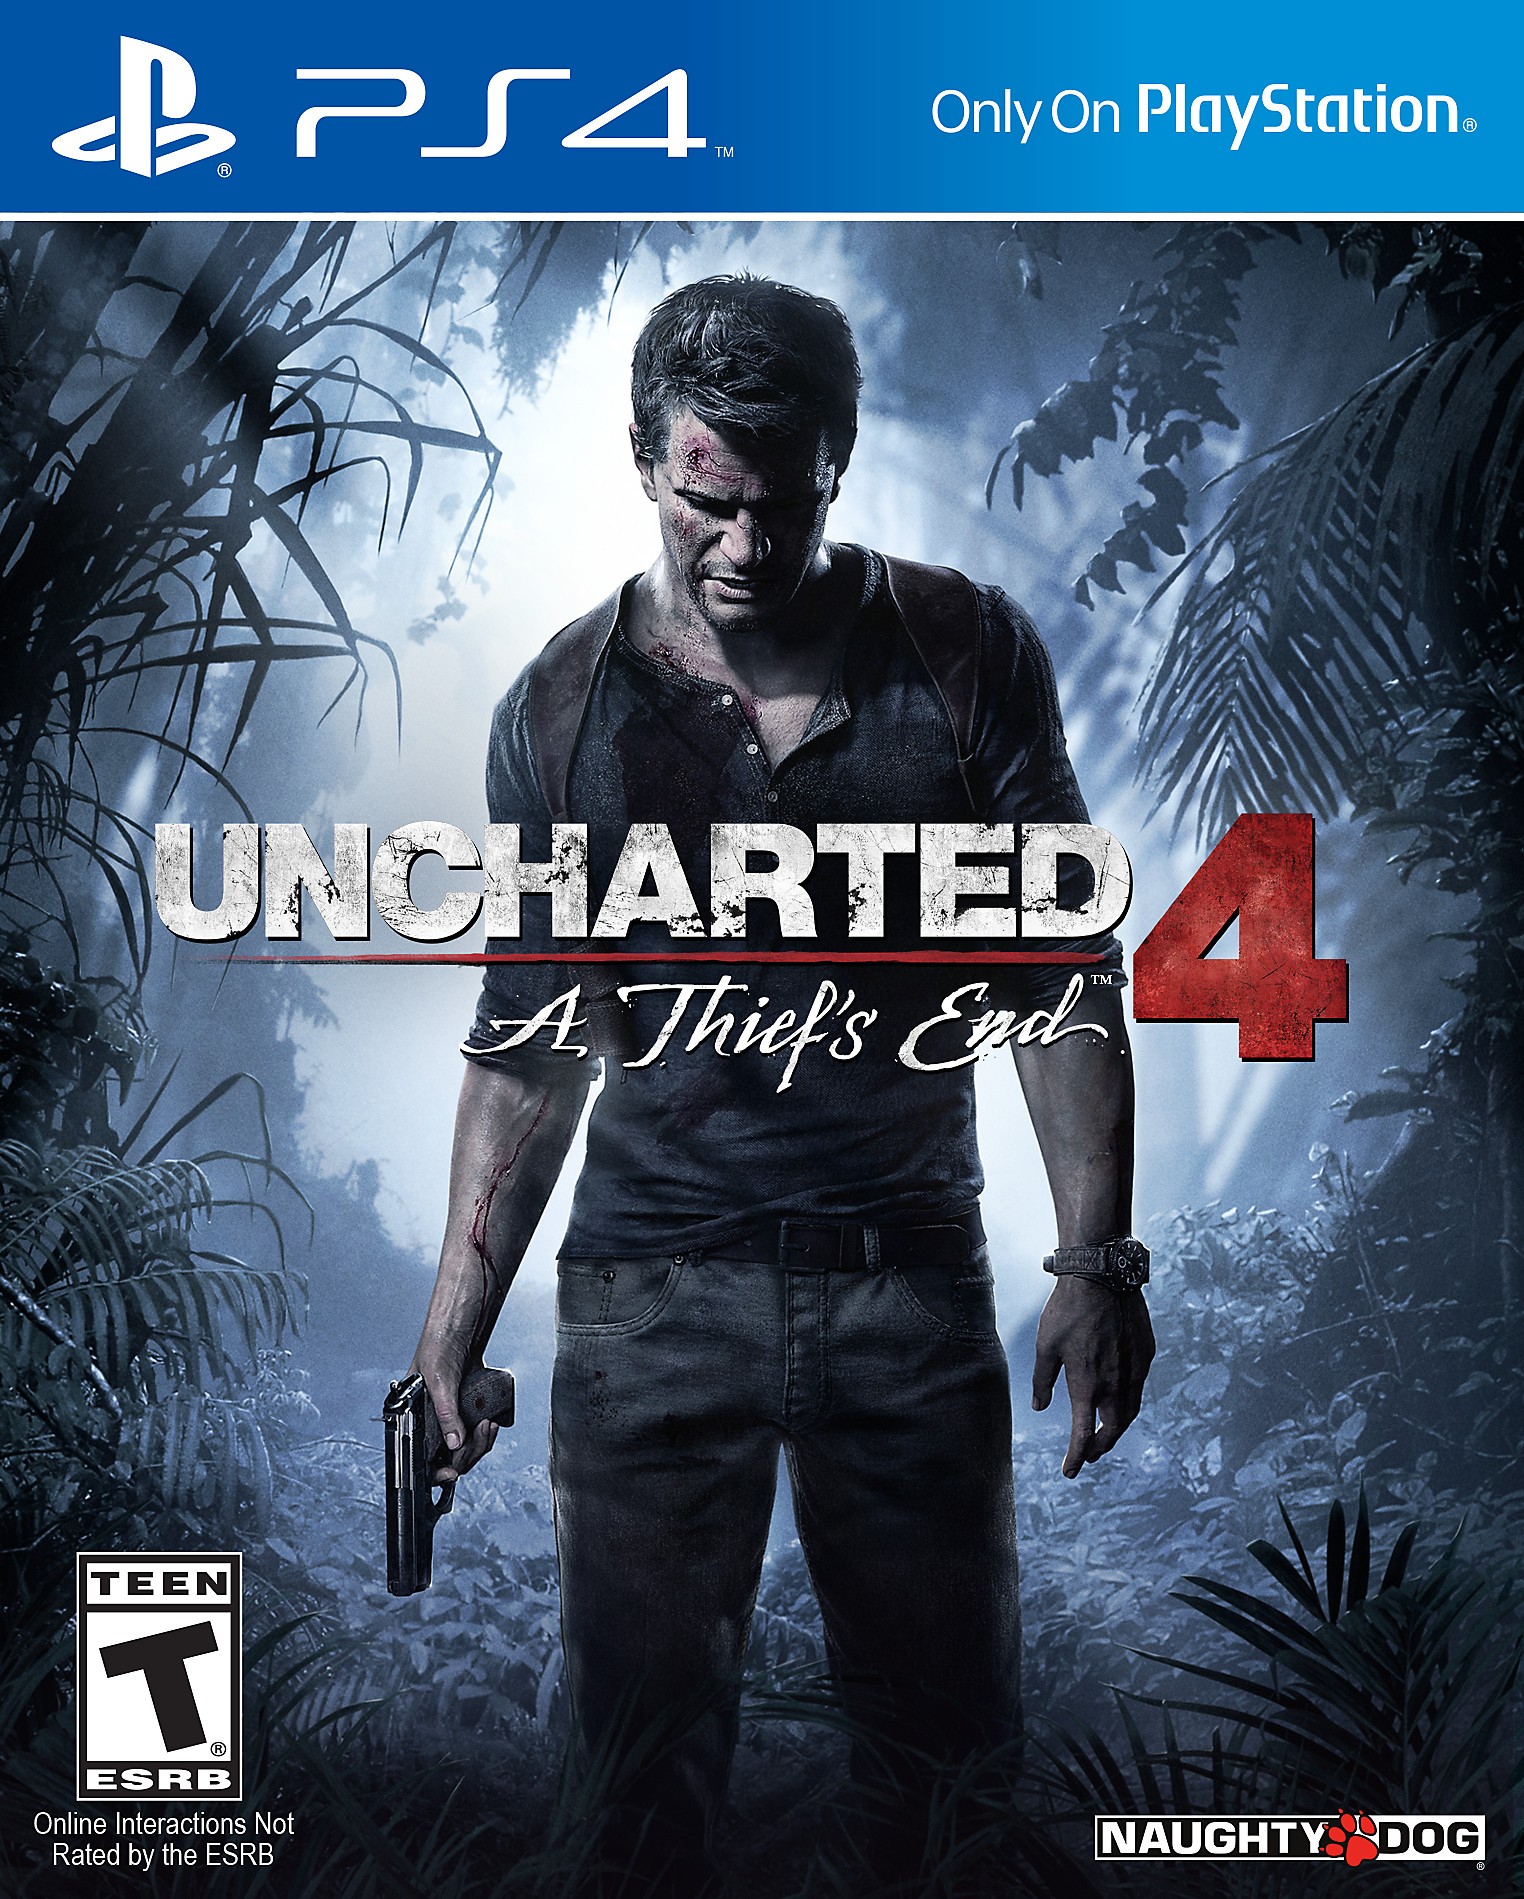 UNCHARTED 4: A Thief's End - PS4 Pro